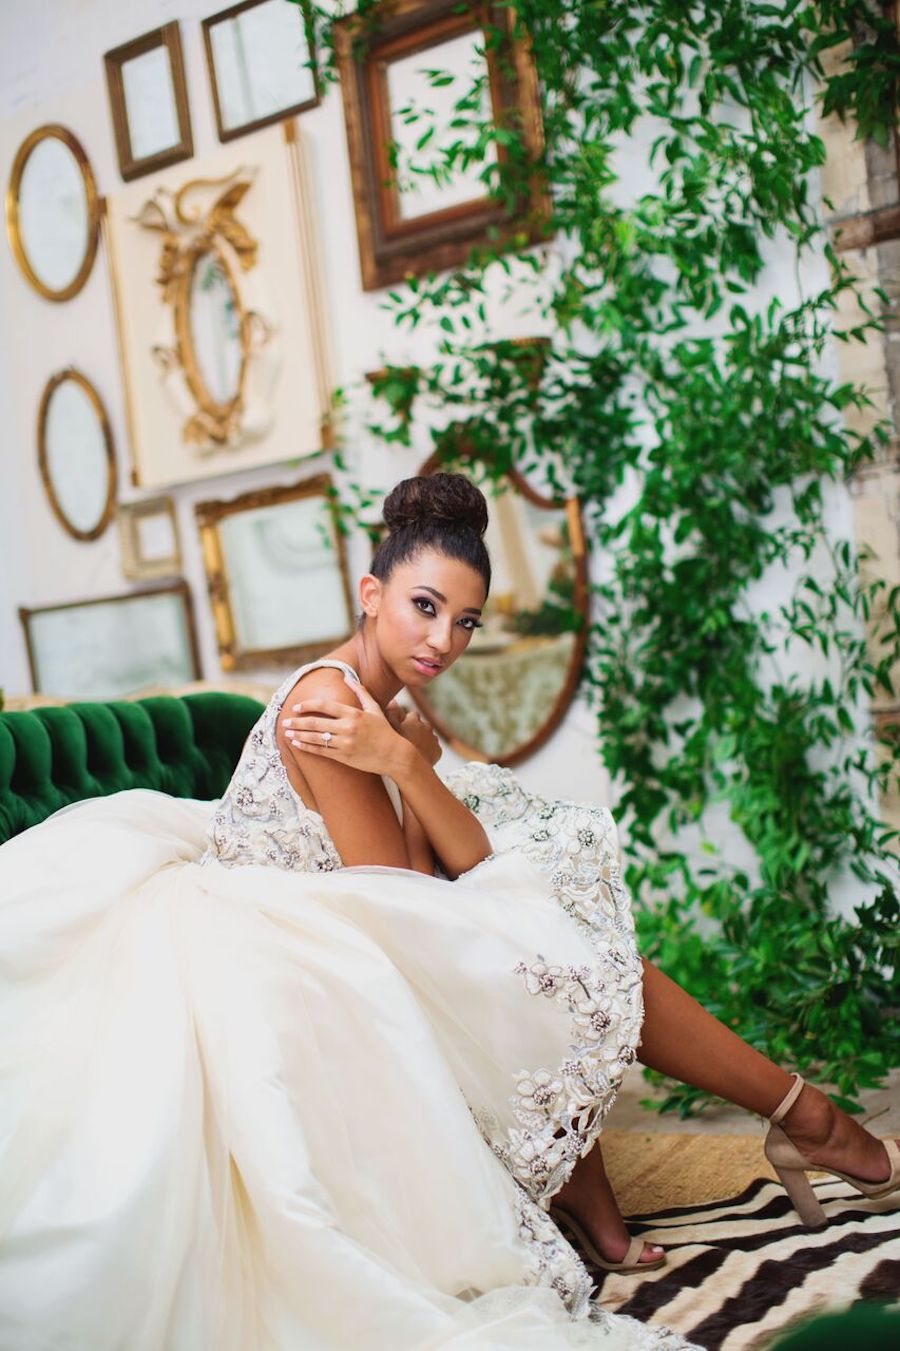 Greenery-Leather-Styled-Shoot-Sweet-Salvage-Rentals-Greg-Cahill4.jpg